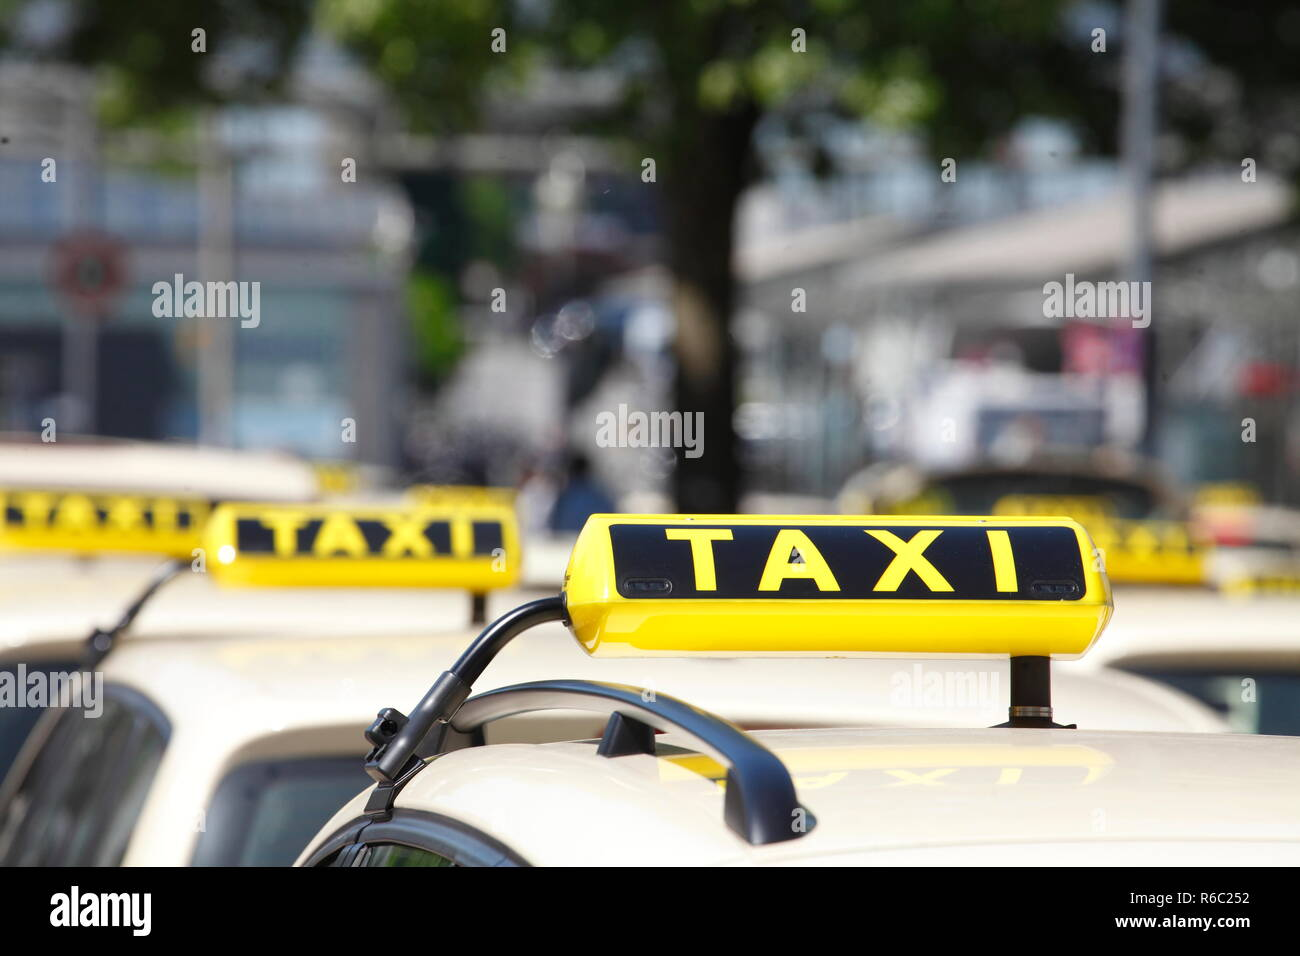 Taxi Signs, Germany, Europe - Stock Image